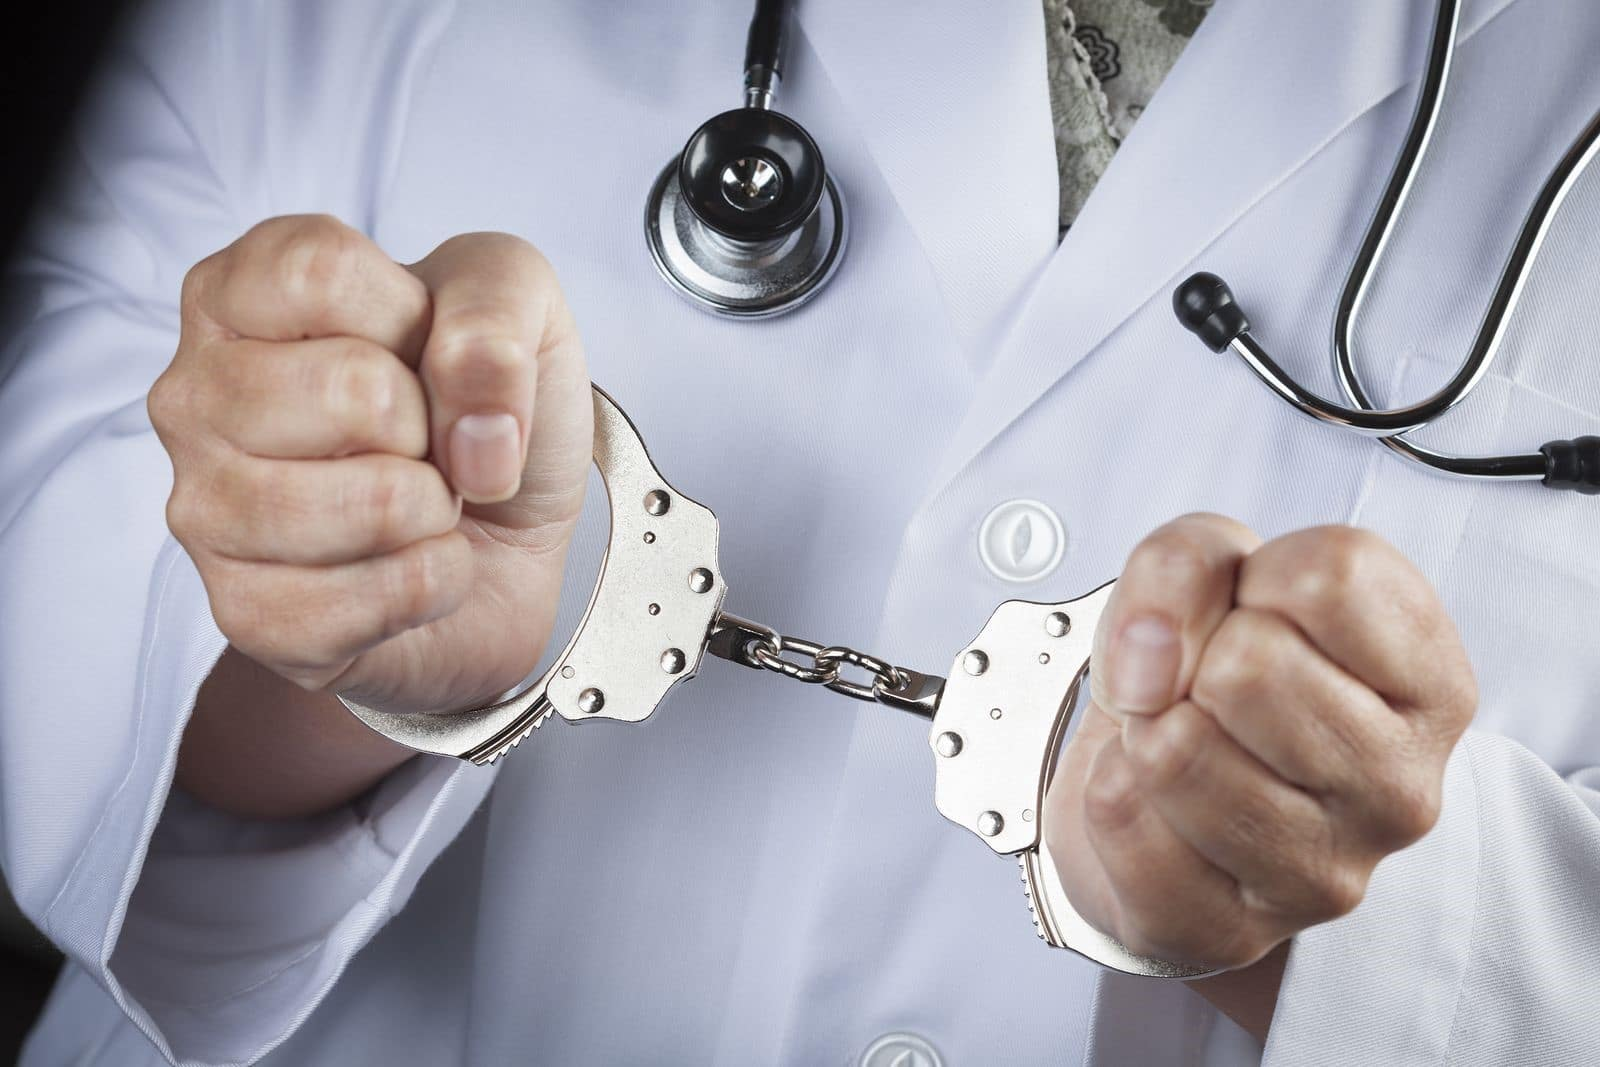 Let a Medical Malpractice Attorney Help Get The Justice You Deserve